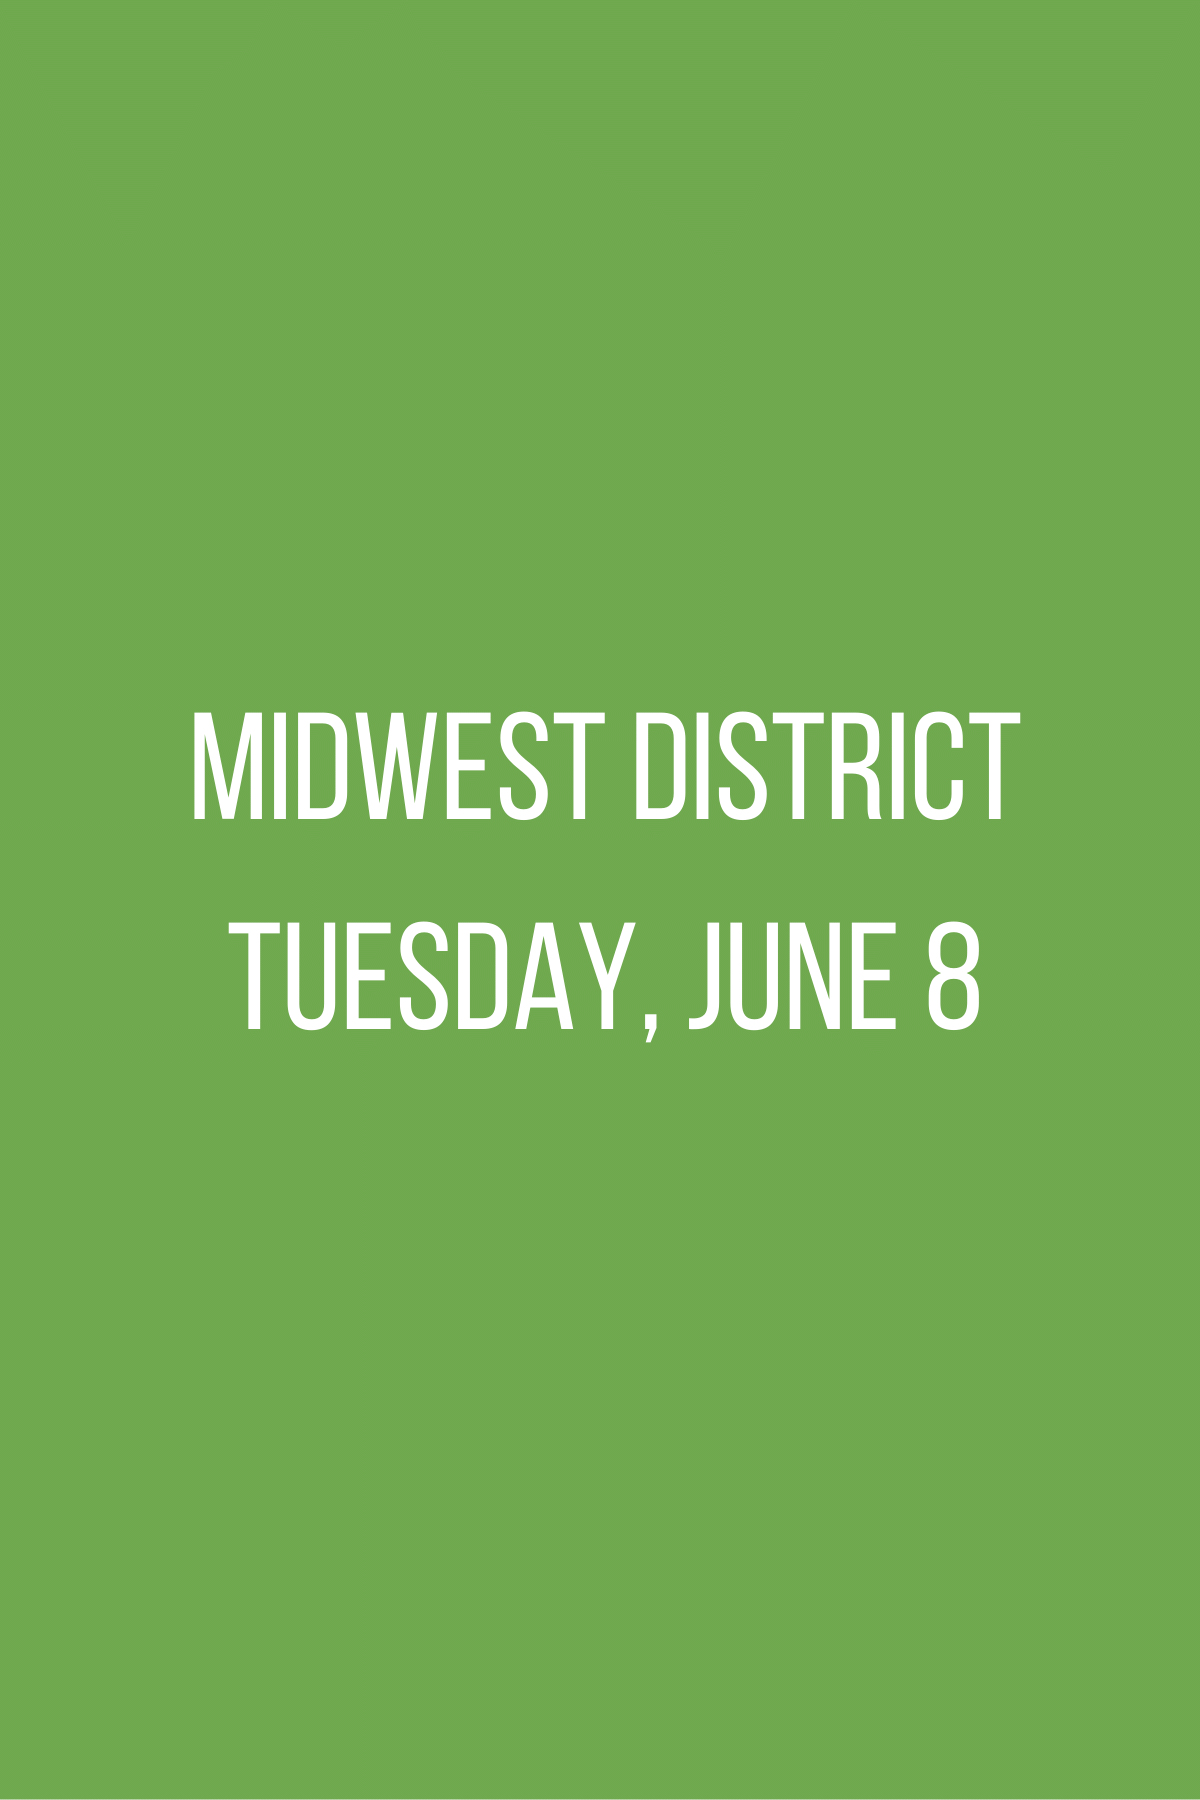 Midwest District Meeting - Tuesday, June 8